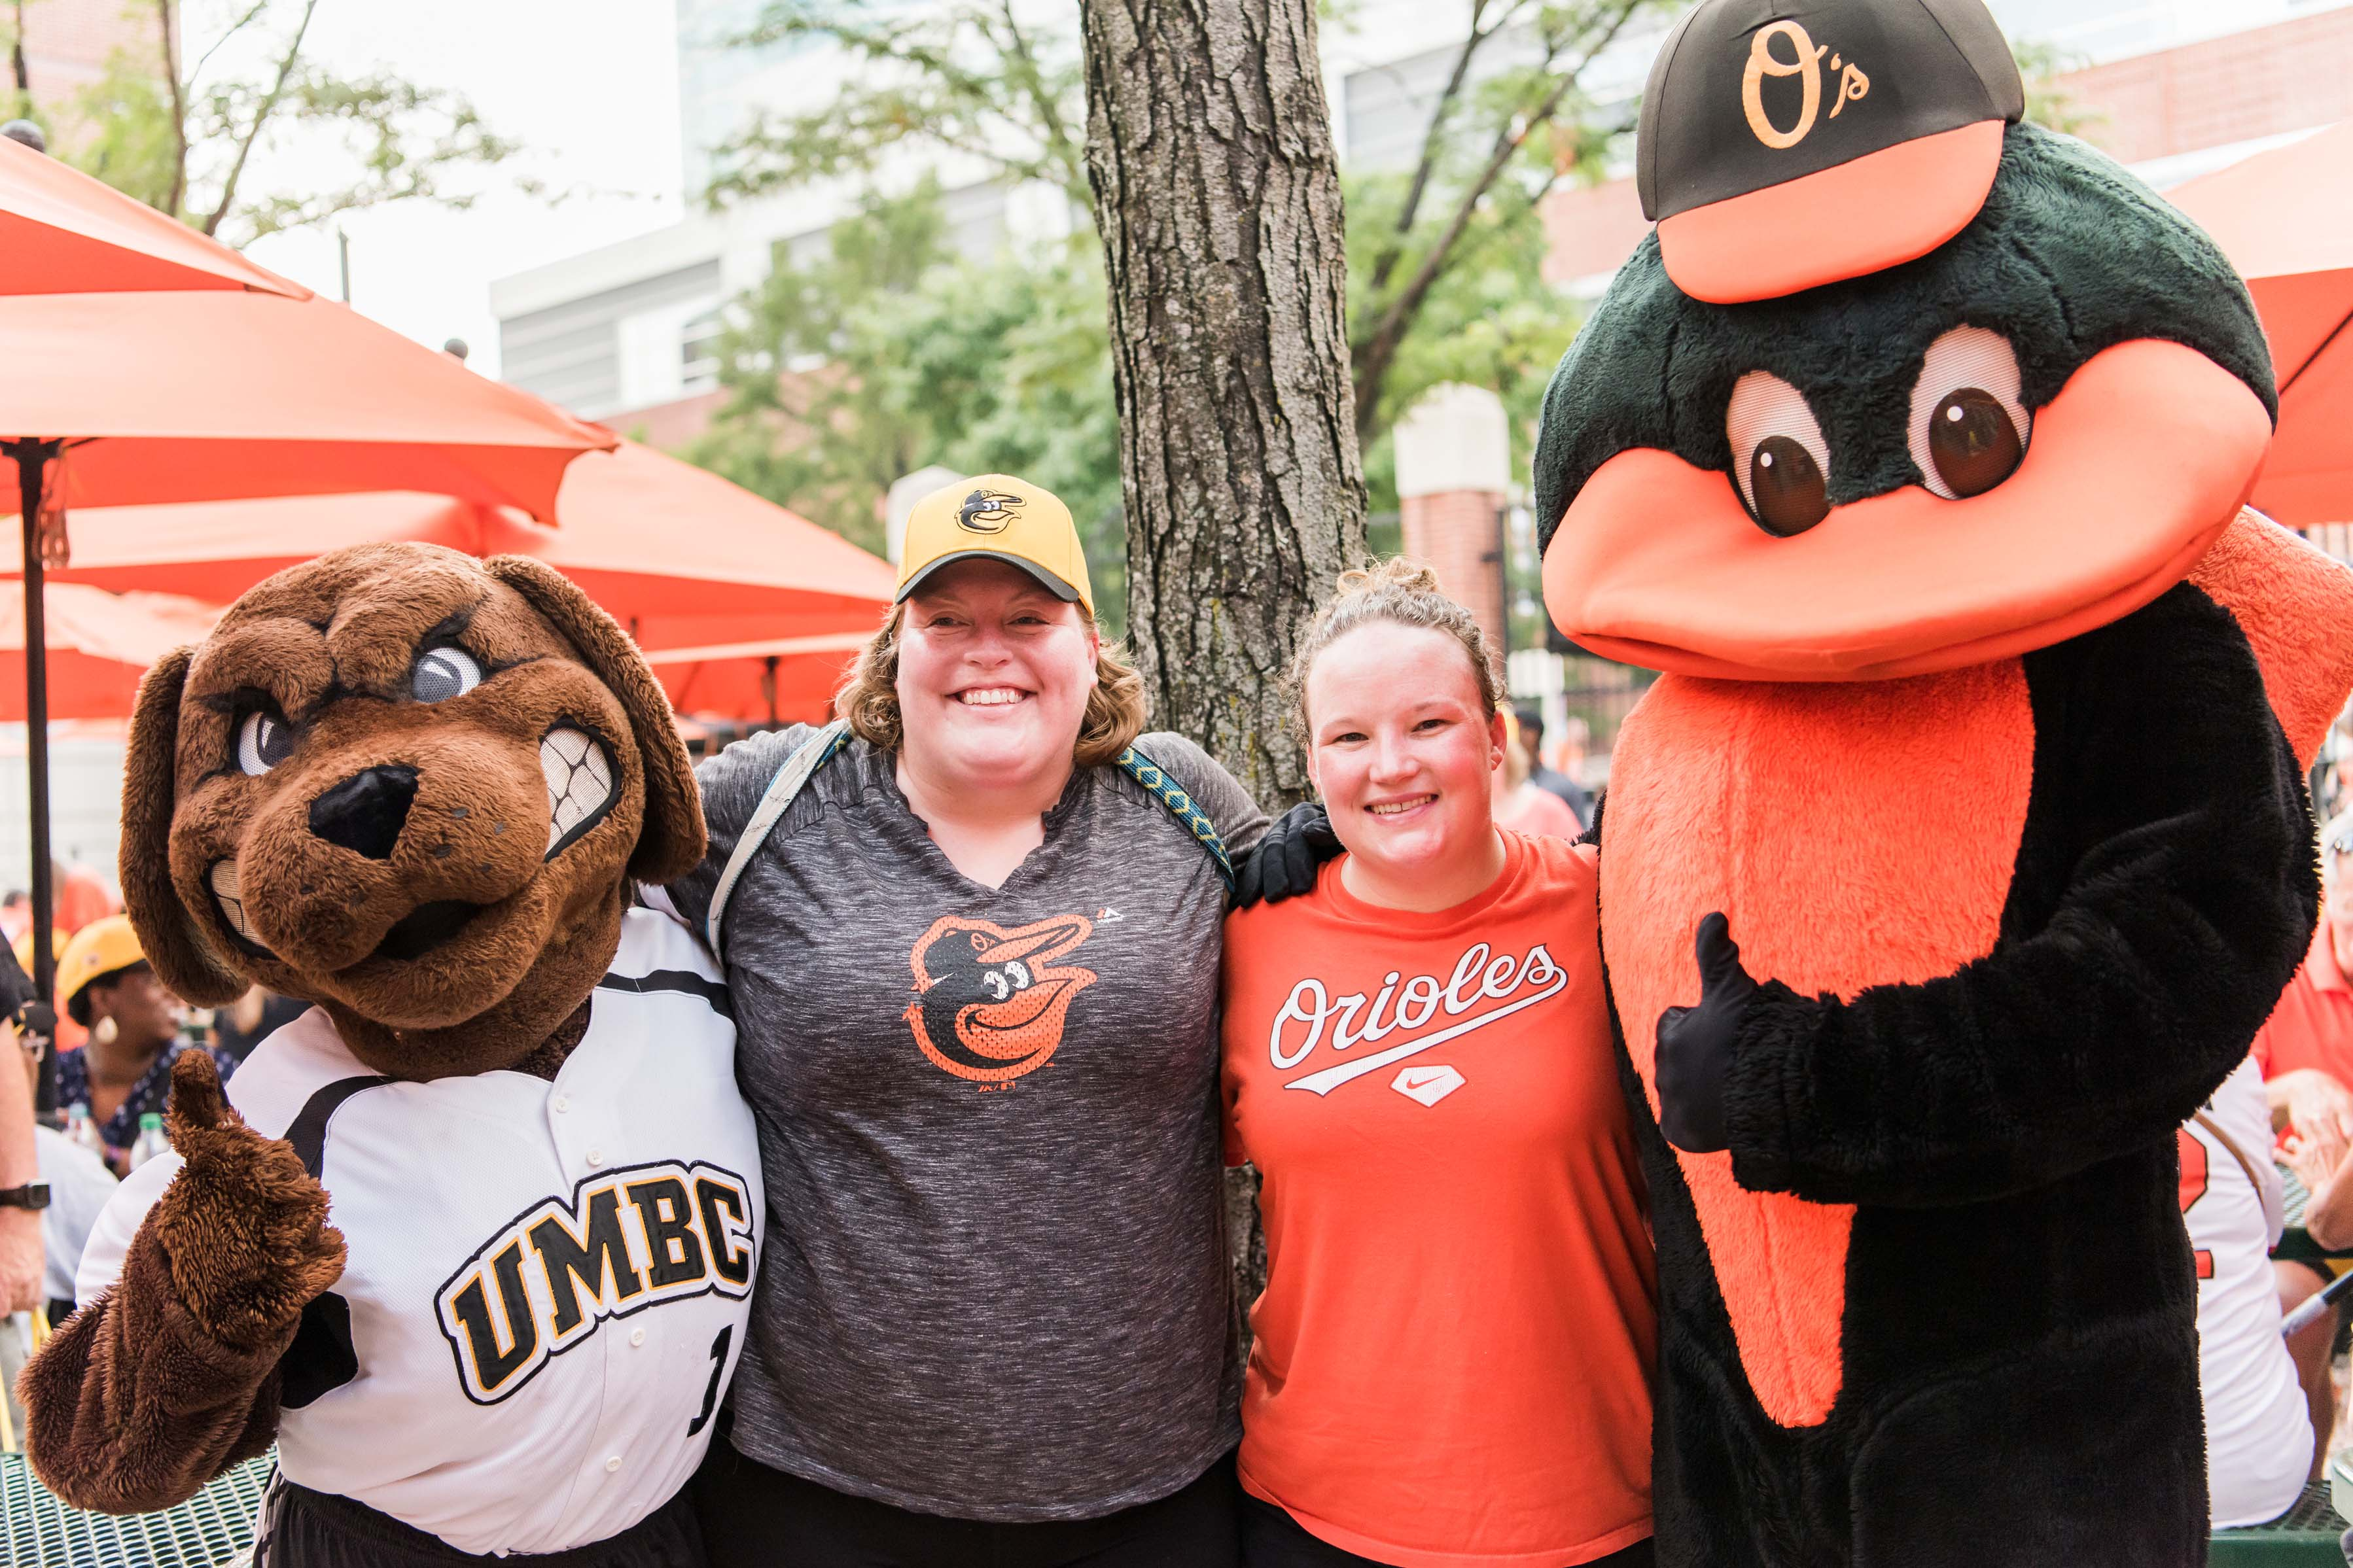 Orioles and UMBC mascot posing with fans